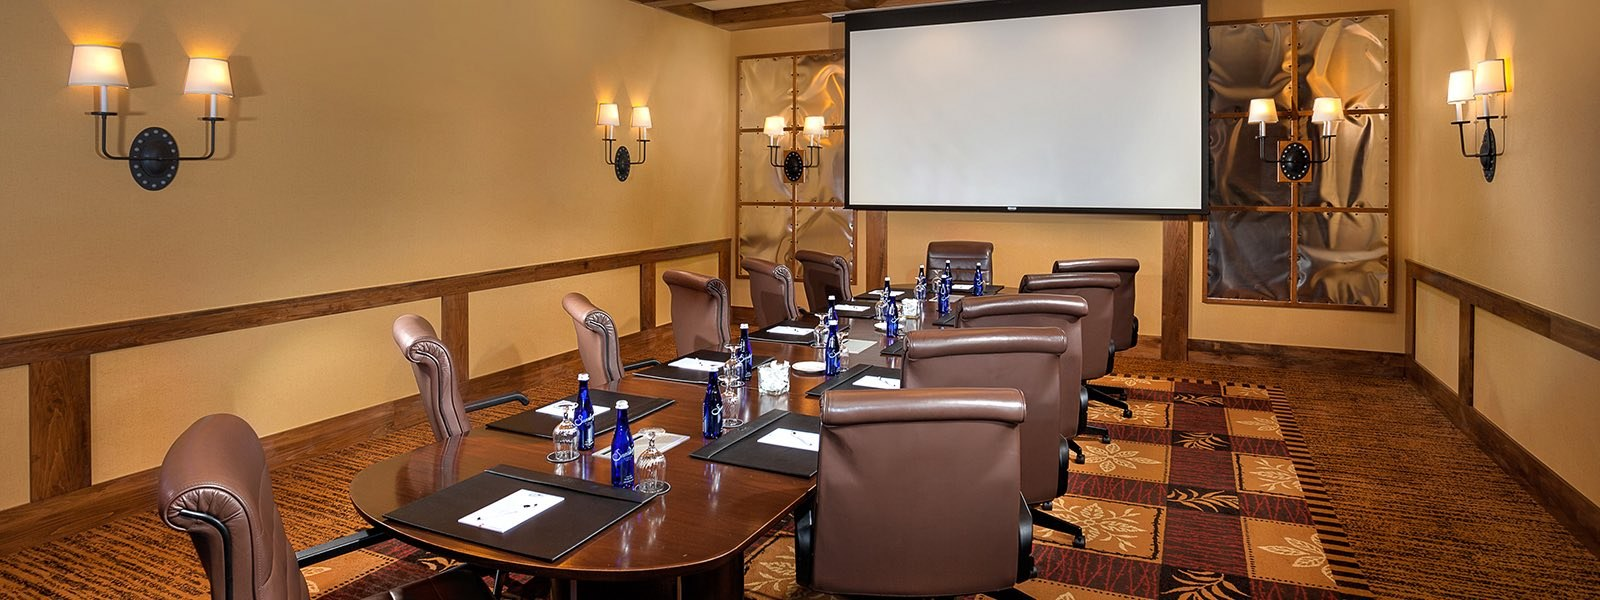 Corporate business conference venue with table and large screen